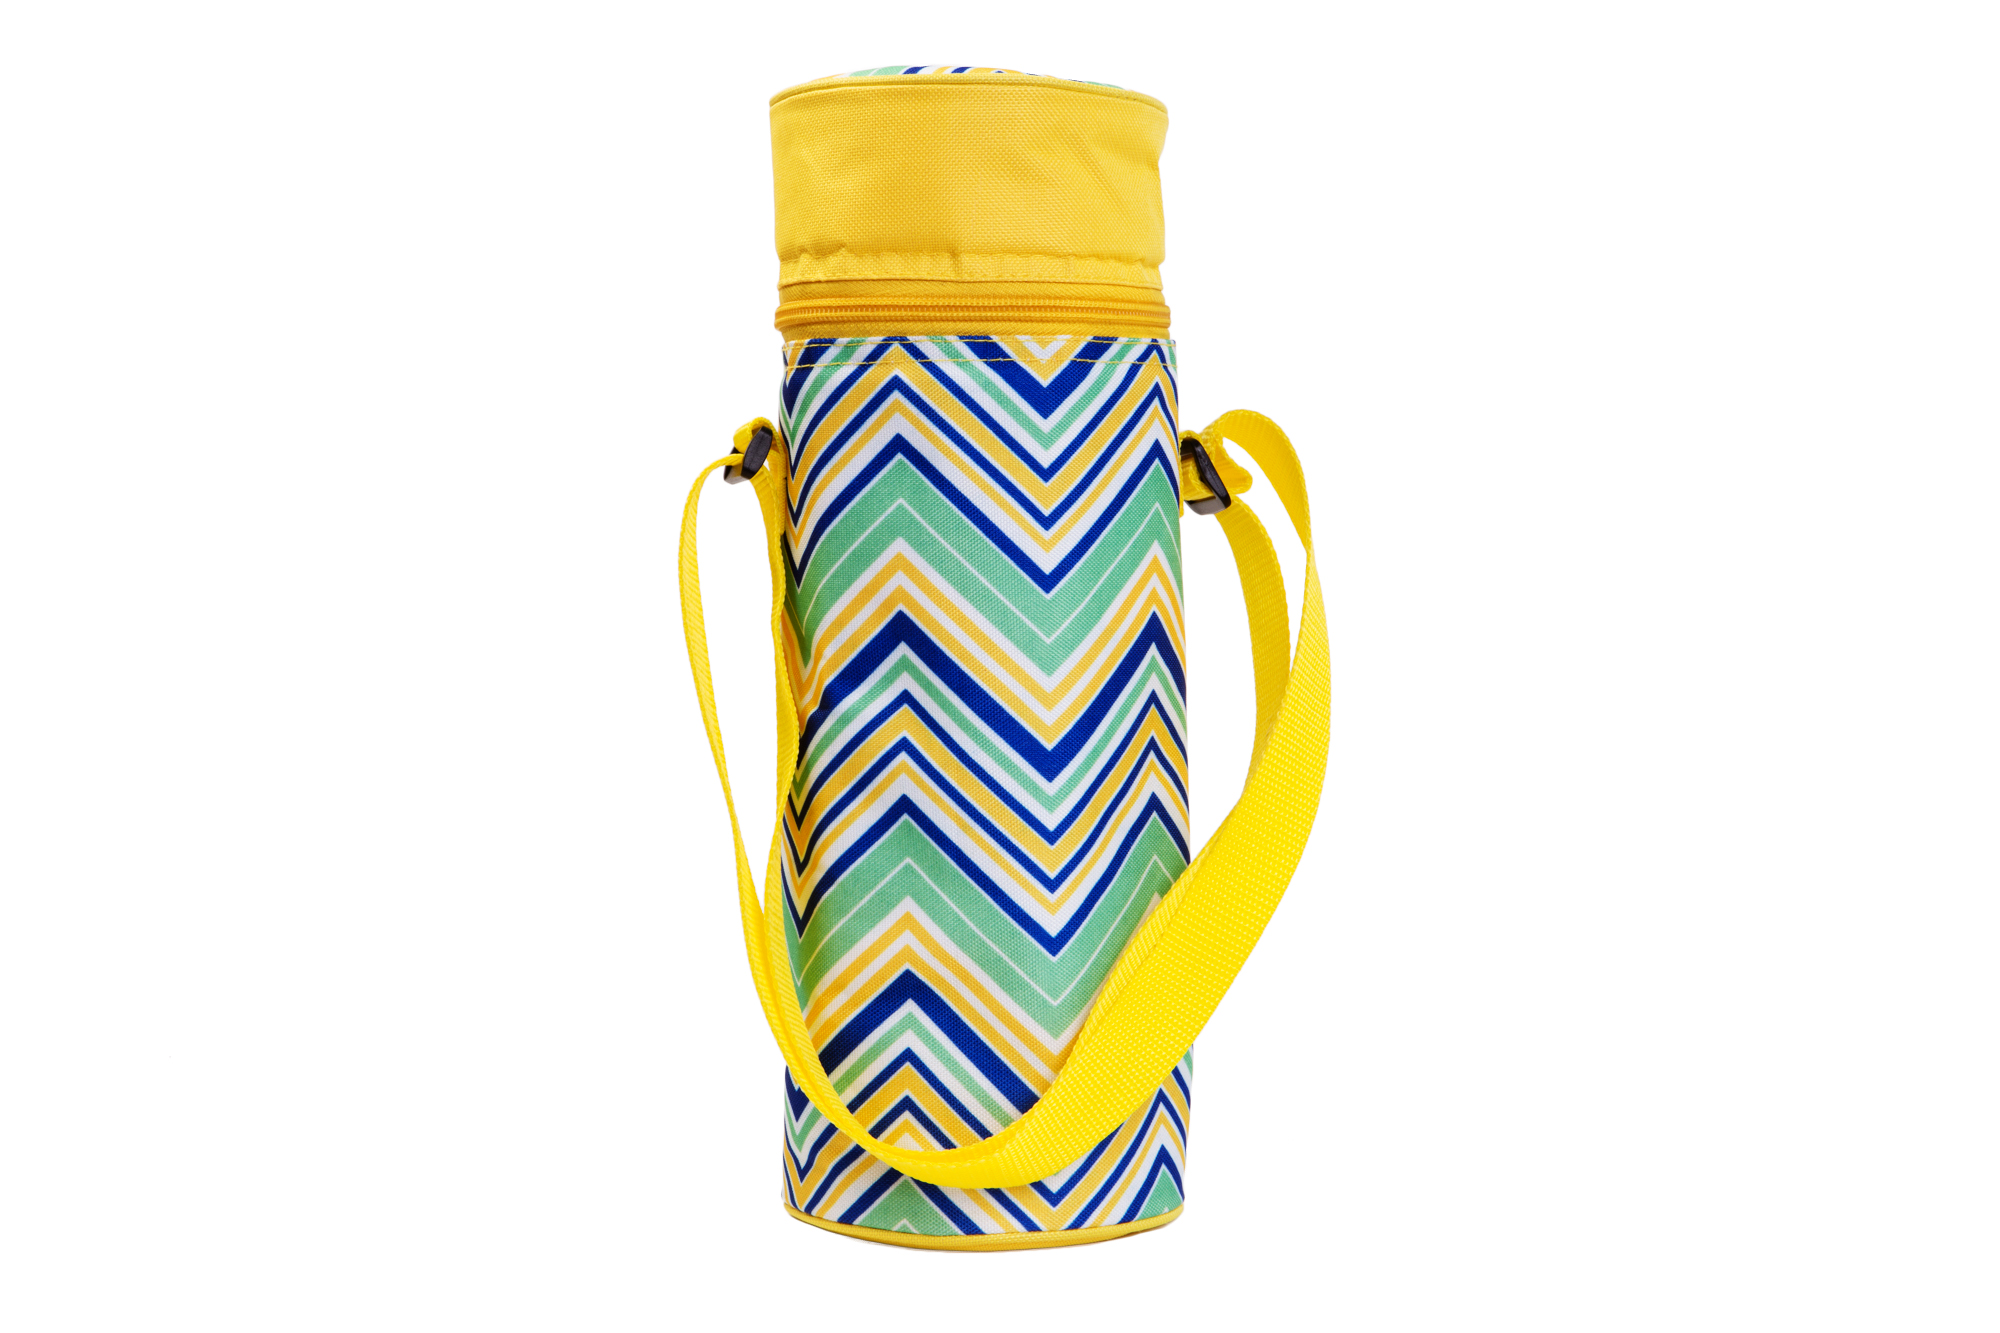 Insulated Wine Tote - YellowithMulti Chevrons